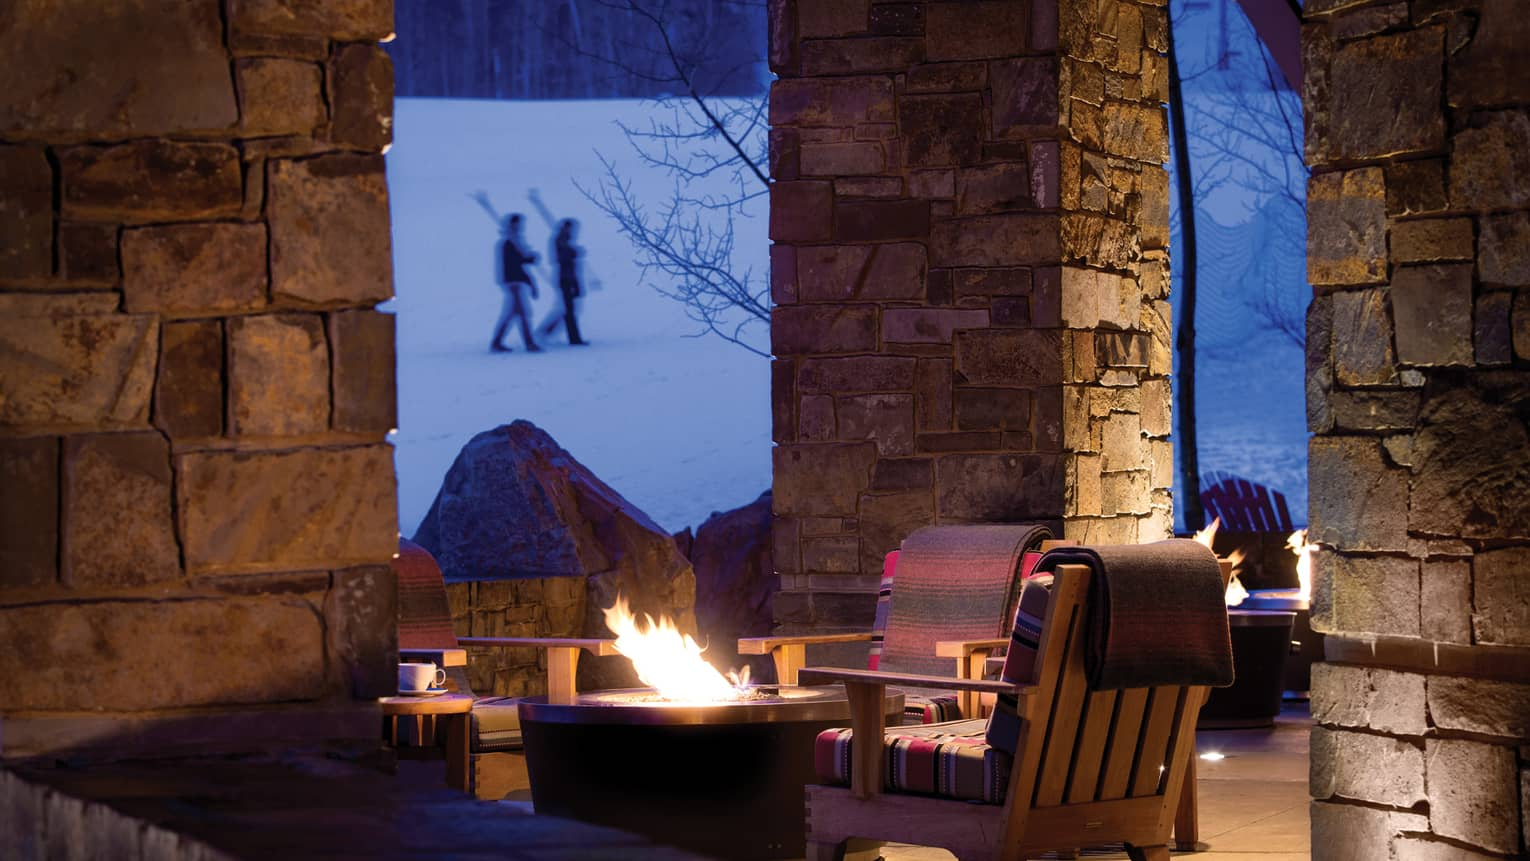 Large wood patio chairs around outdoor gas fire pits by stone columns, skiers walk on hill in background